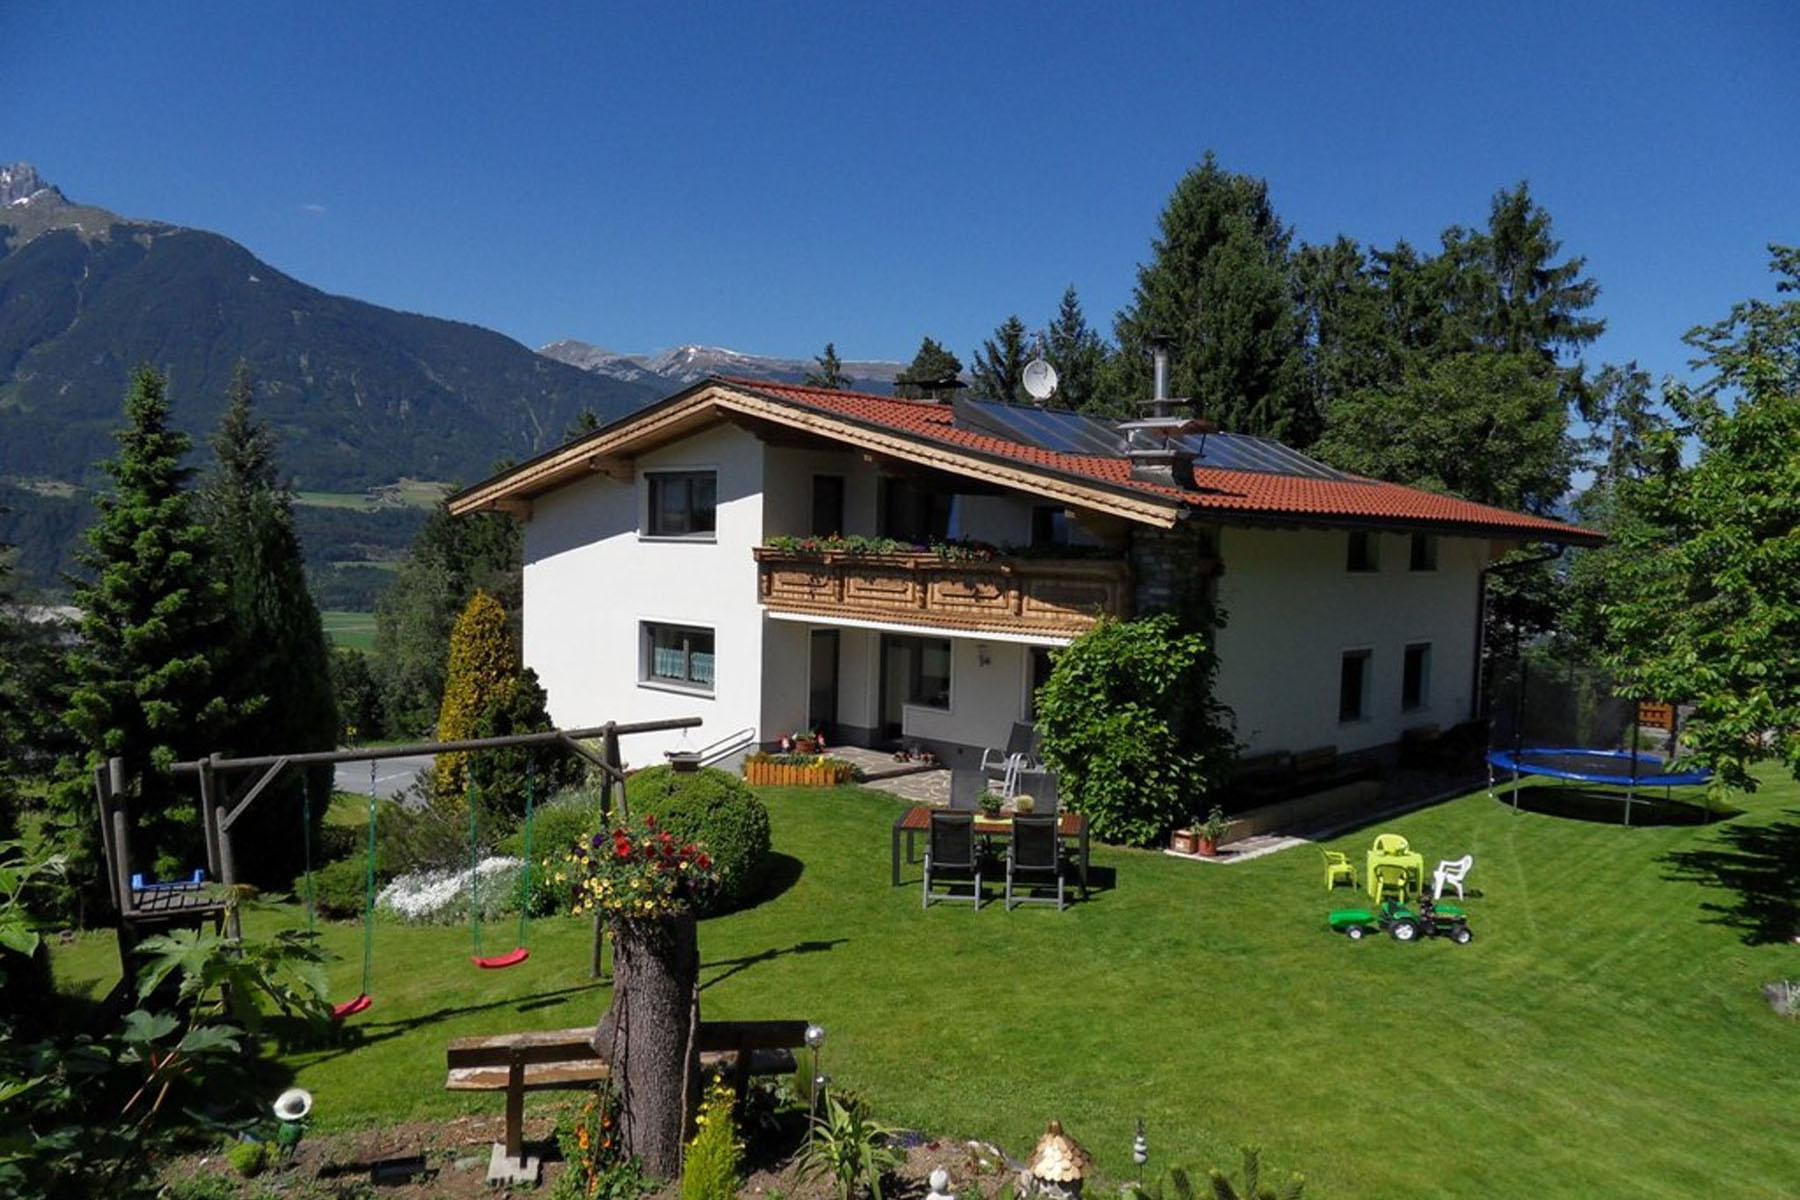 A house with a mountain in the background at Guesthouse Anfang.